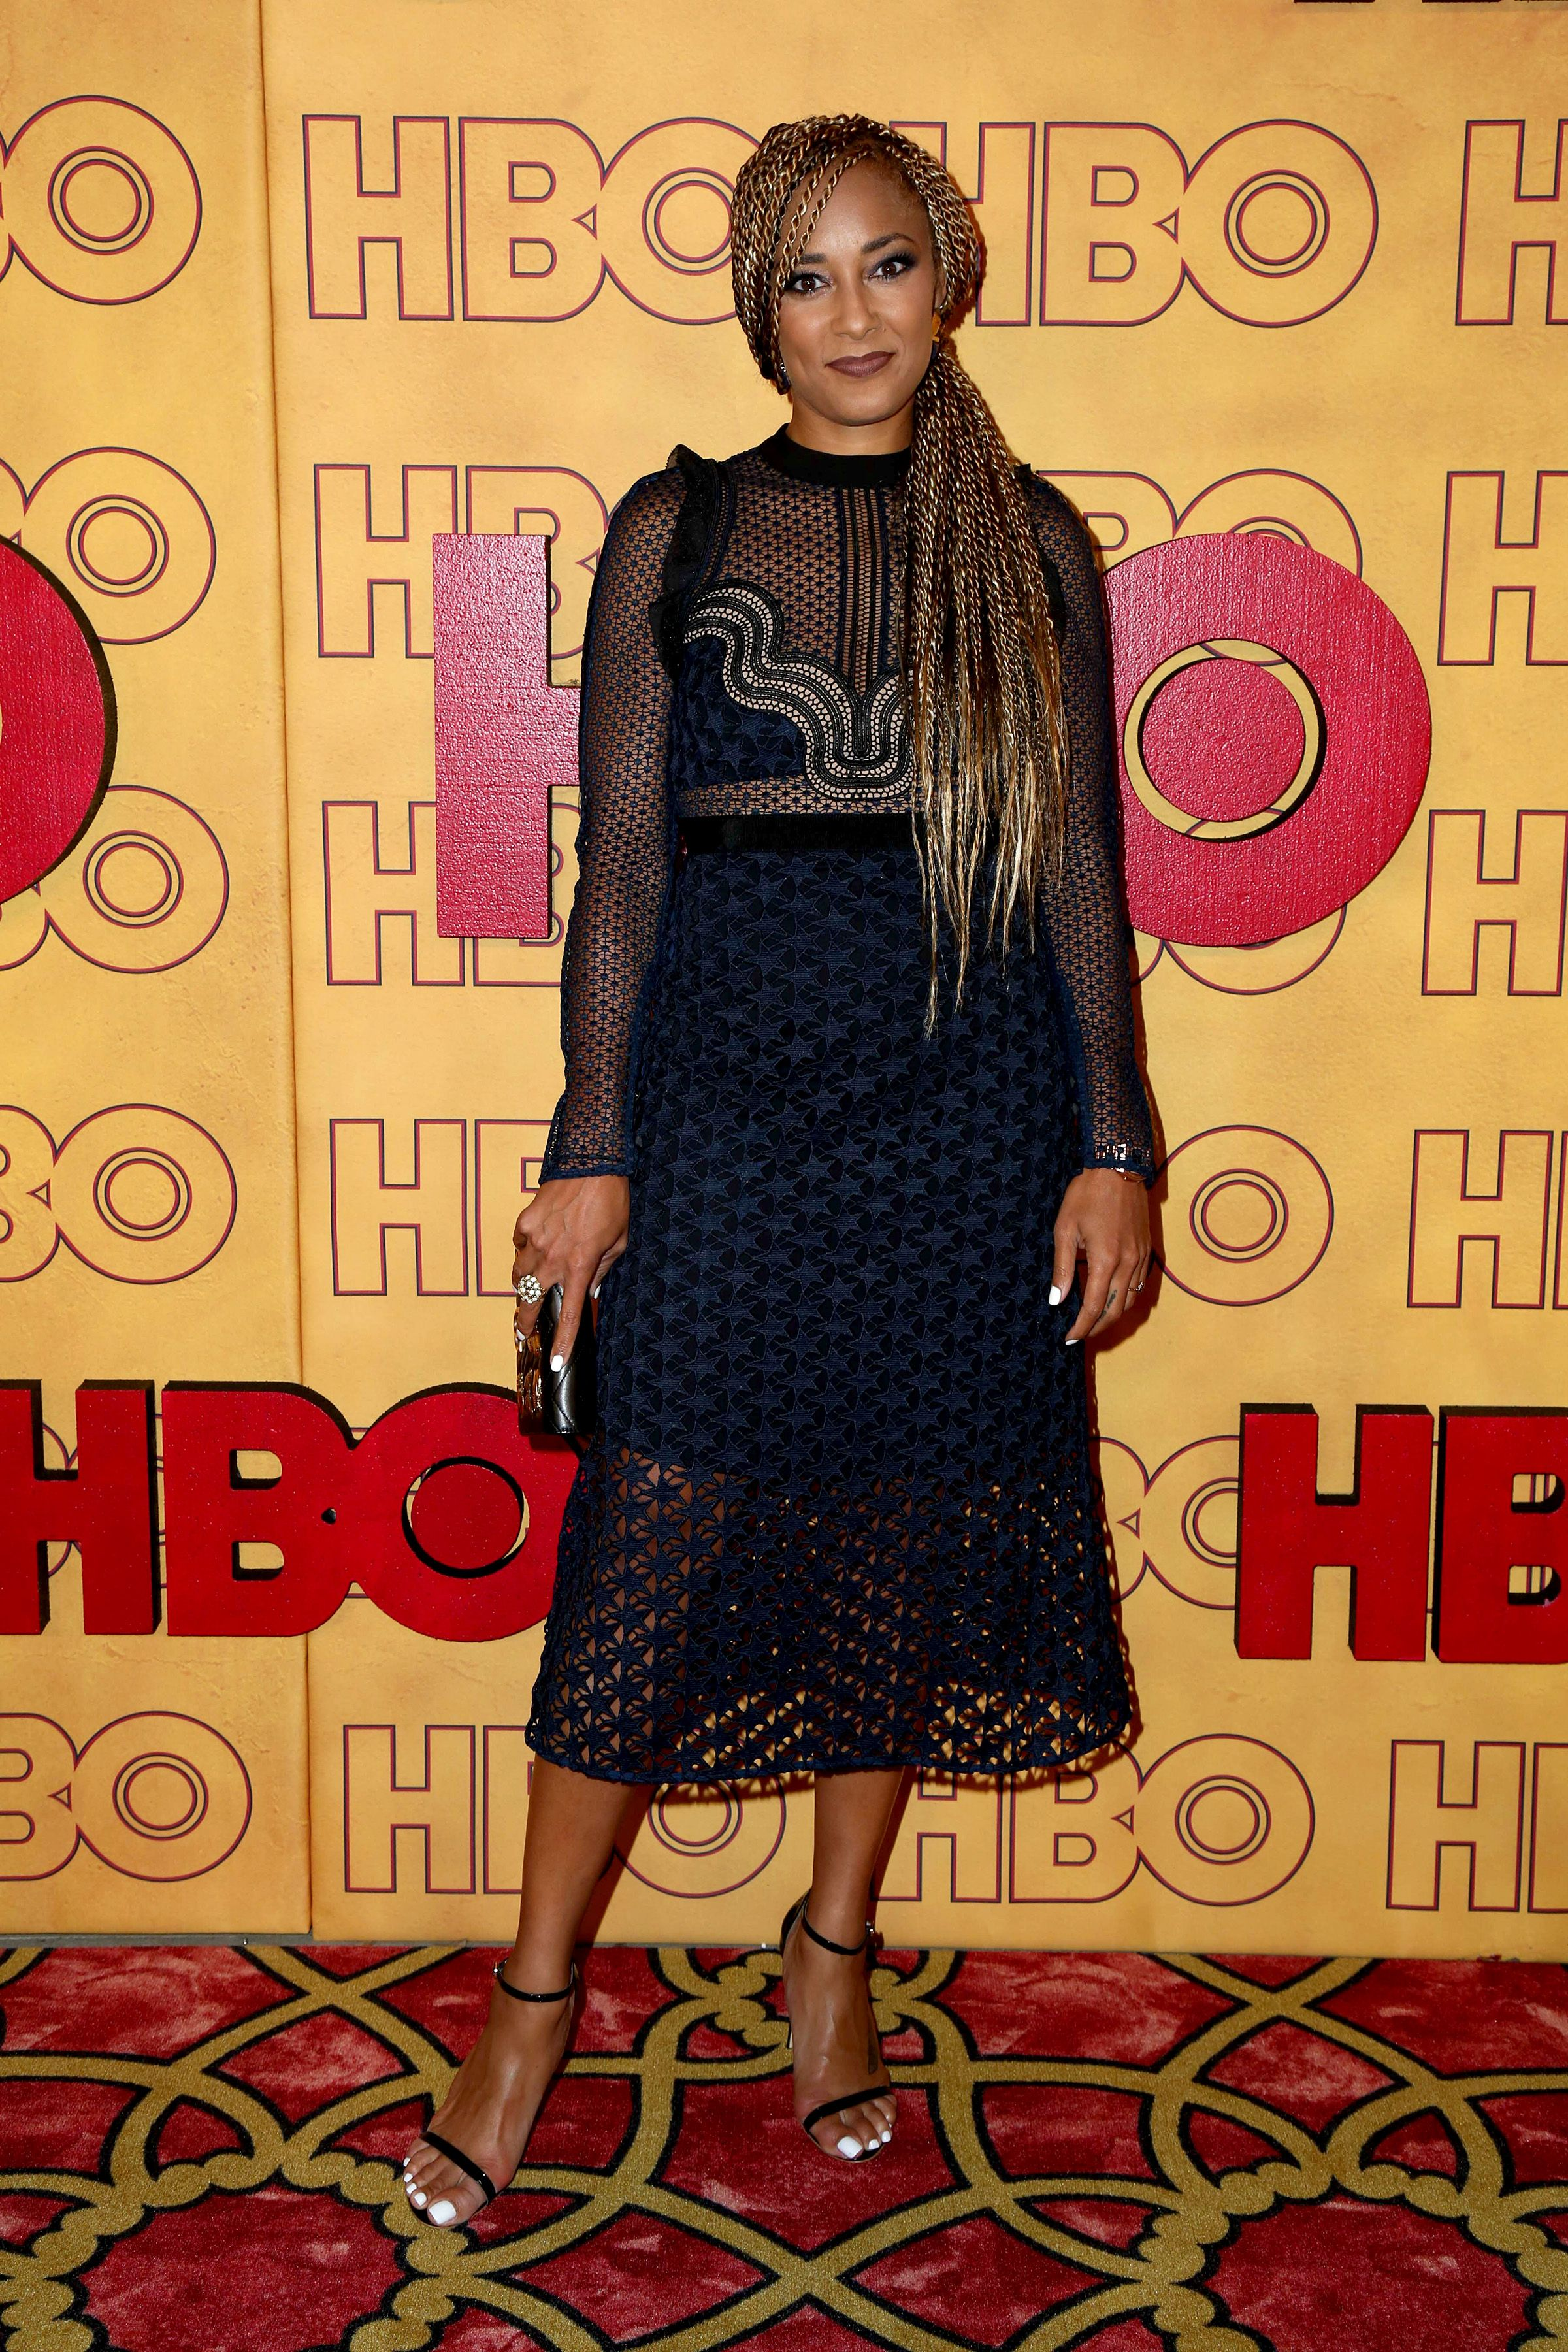 Amanda Seales at the HBO After Party at Pacific Design Center on September 17, 2017 in West Hollywood, CA. | Source: Shutterstock